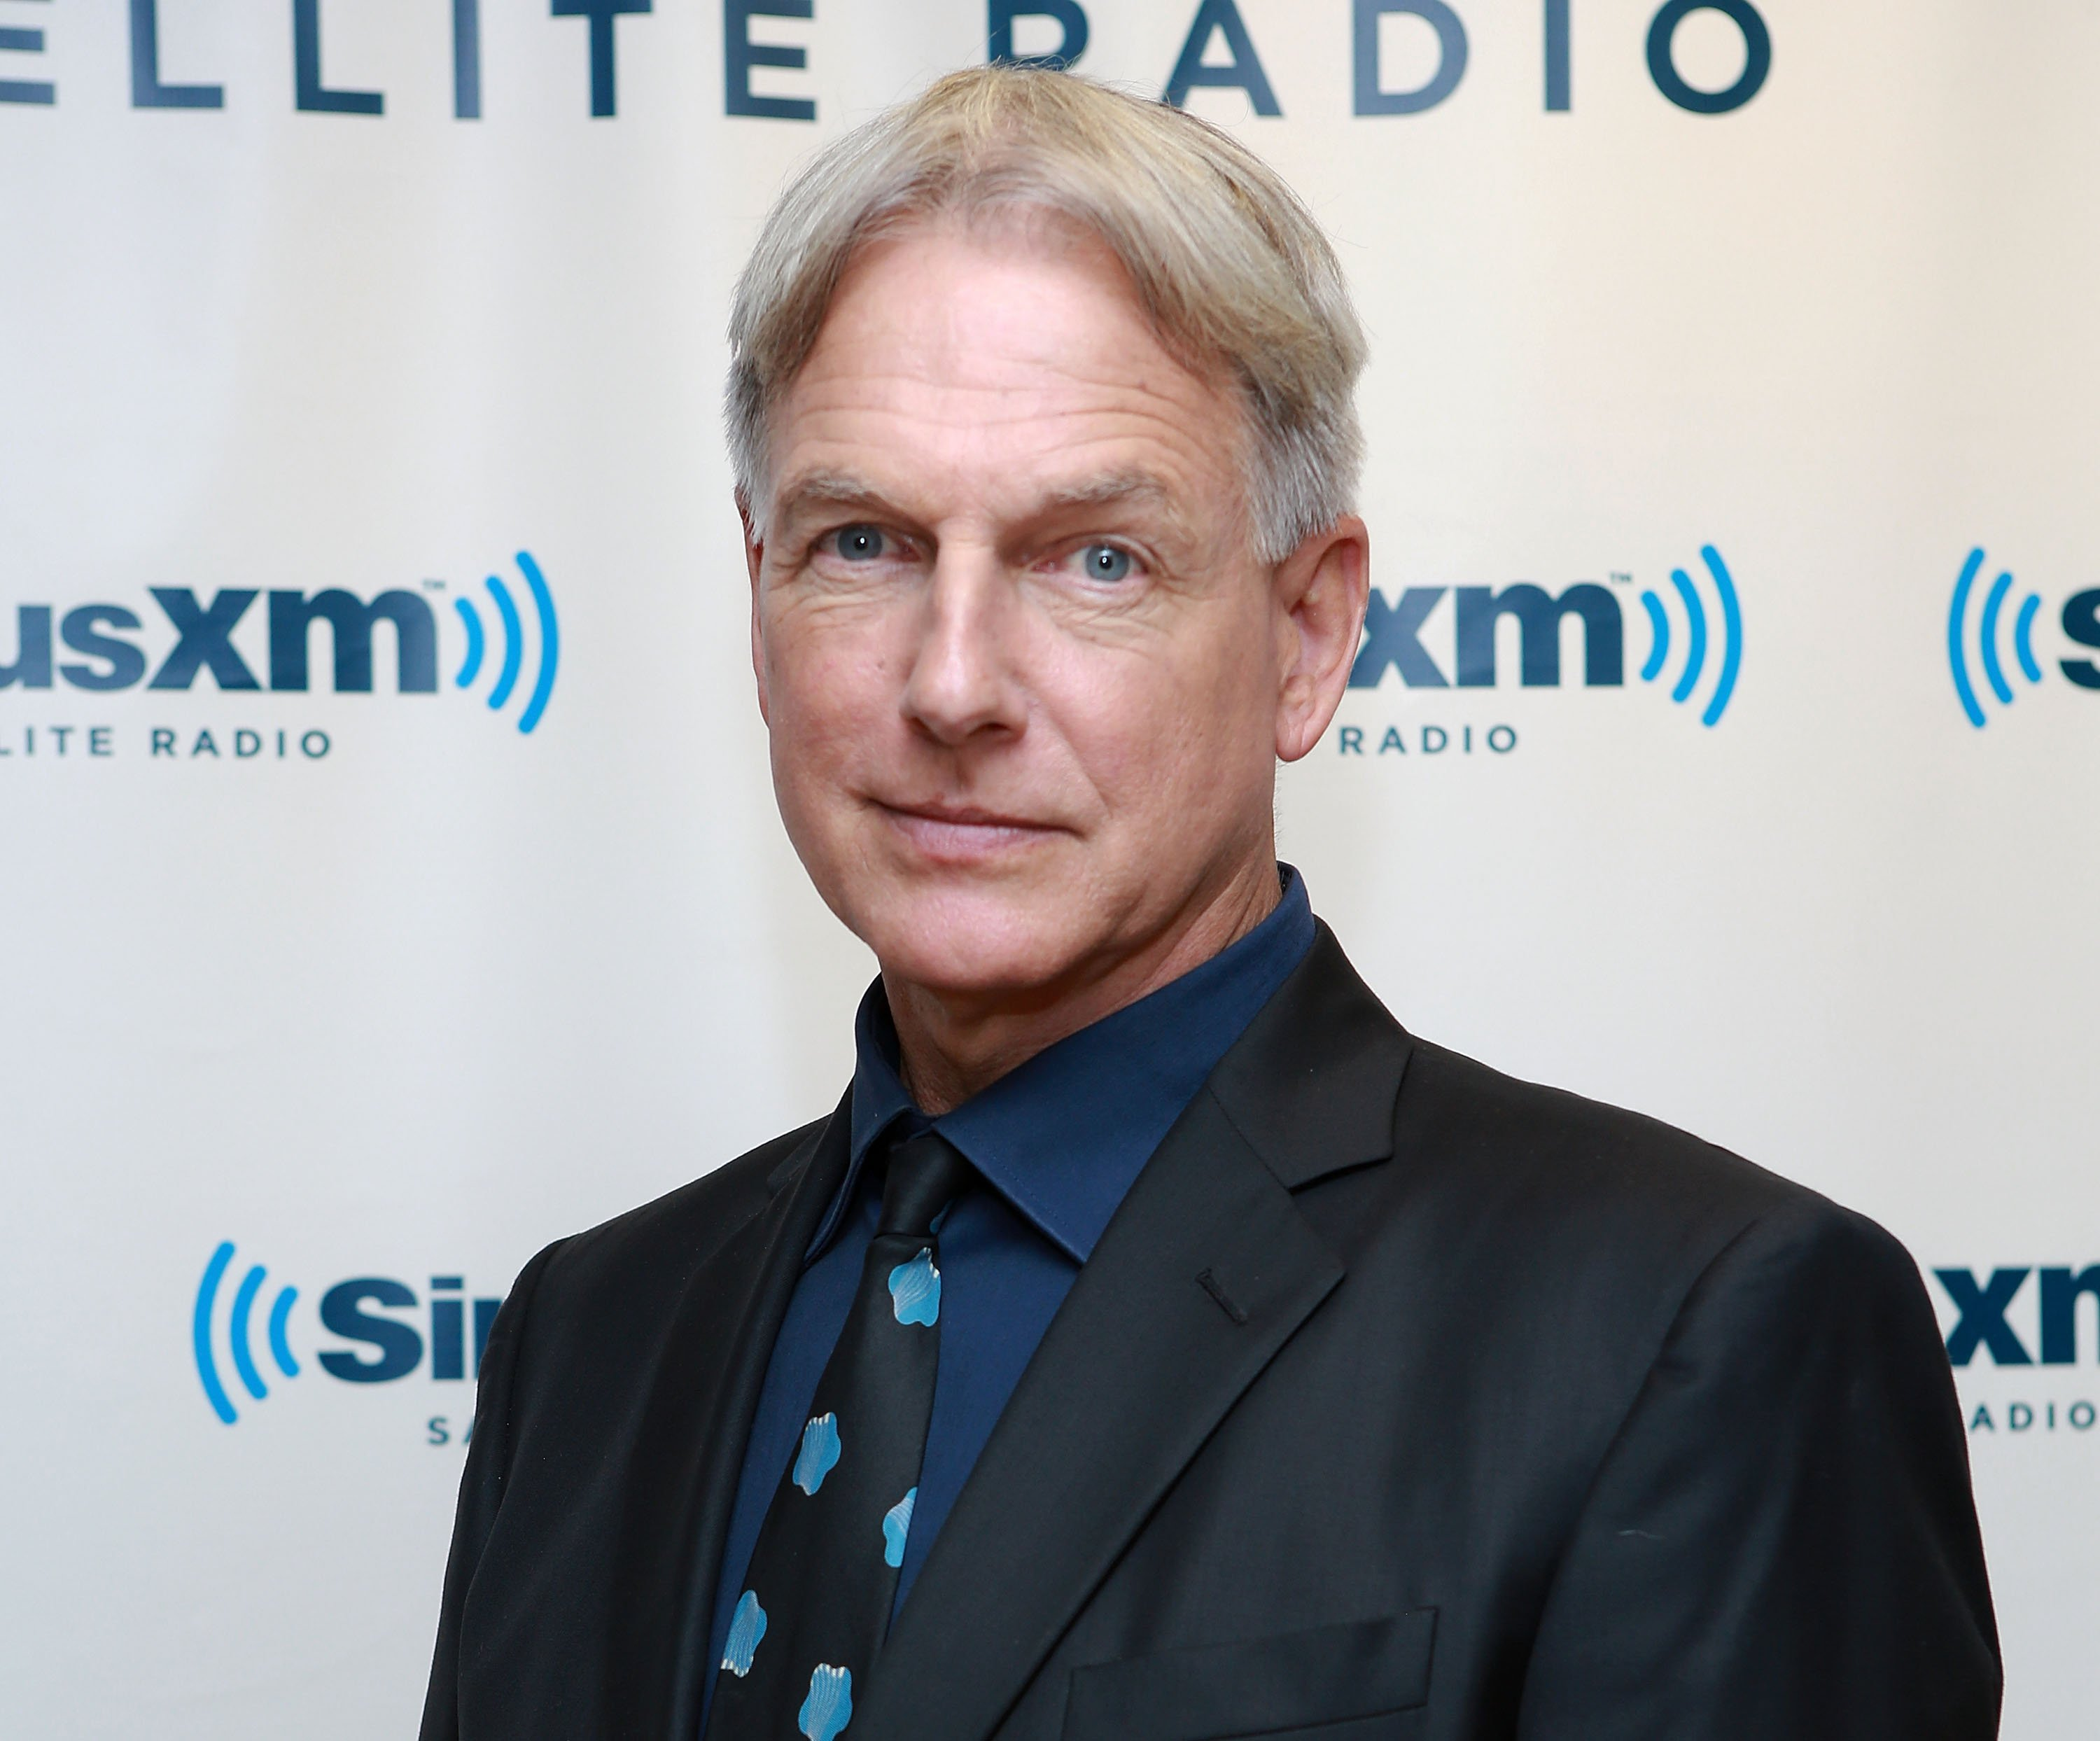 Mark Harmon on May 14, 2013 in New York City | Source: Getty Images/Global Images Ukraine